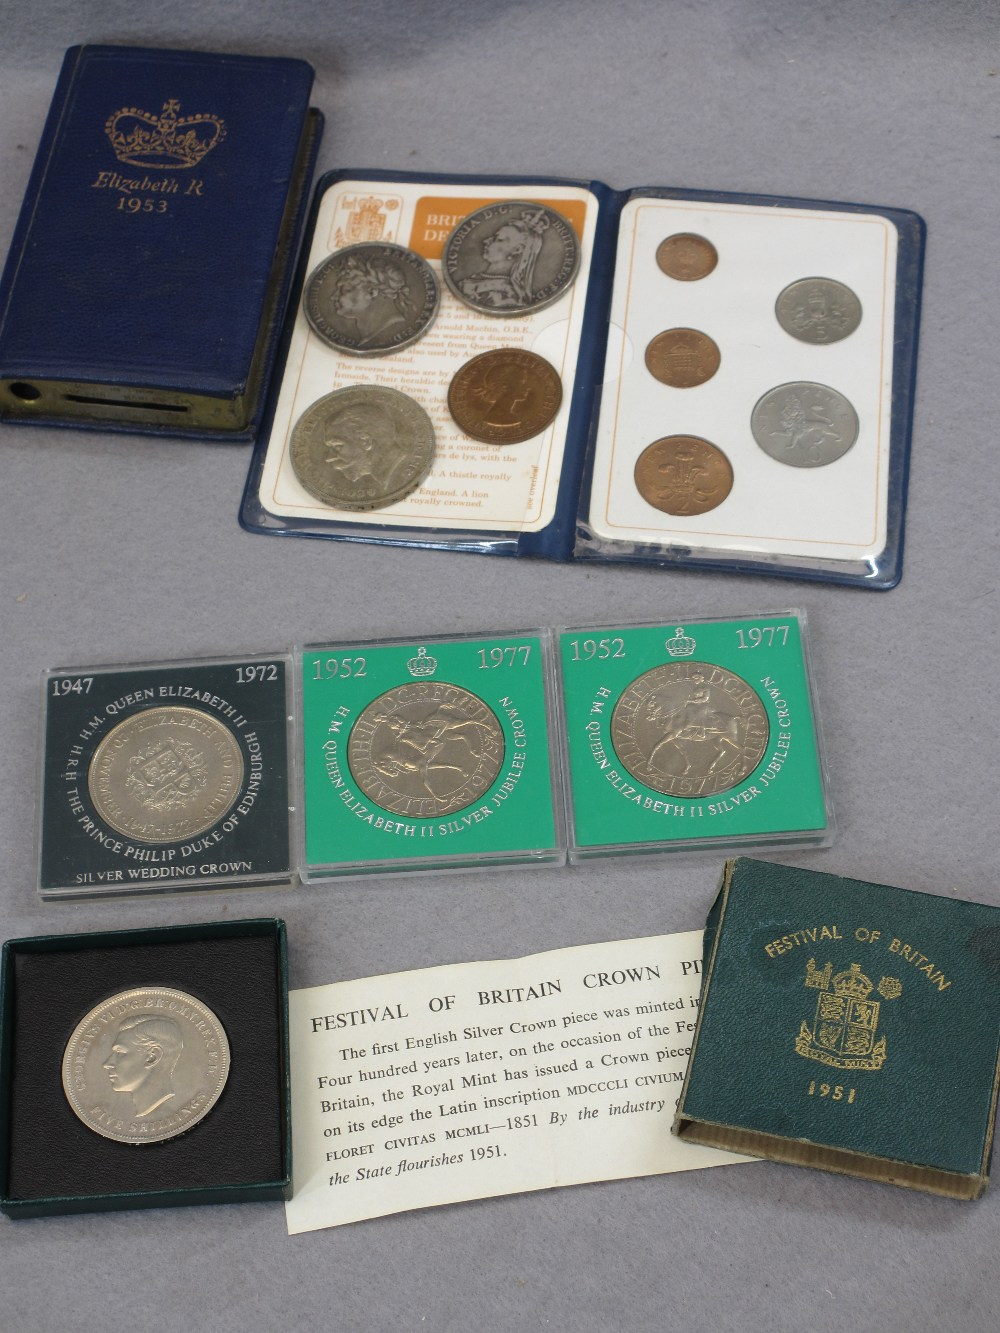 GEORGE IV 1821 & VICTORIA 1889 WITH OTHER COLLECTABLE CROWNS, Britain's first decimal coins - Image 3 of 3